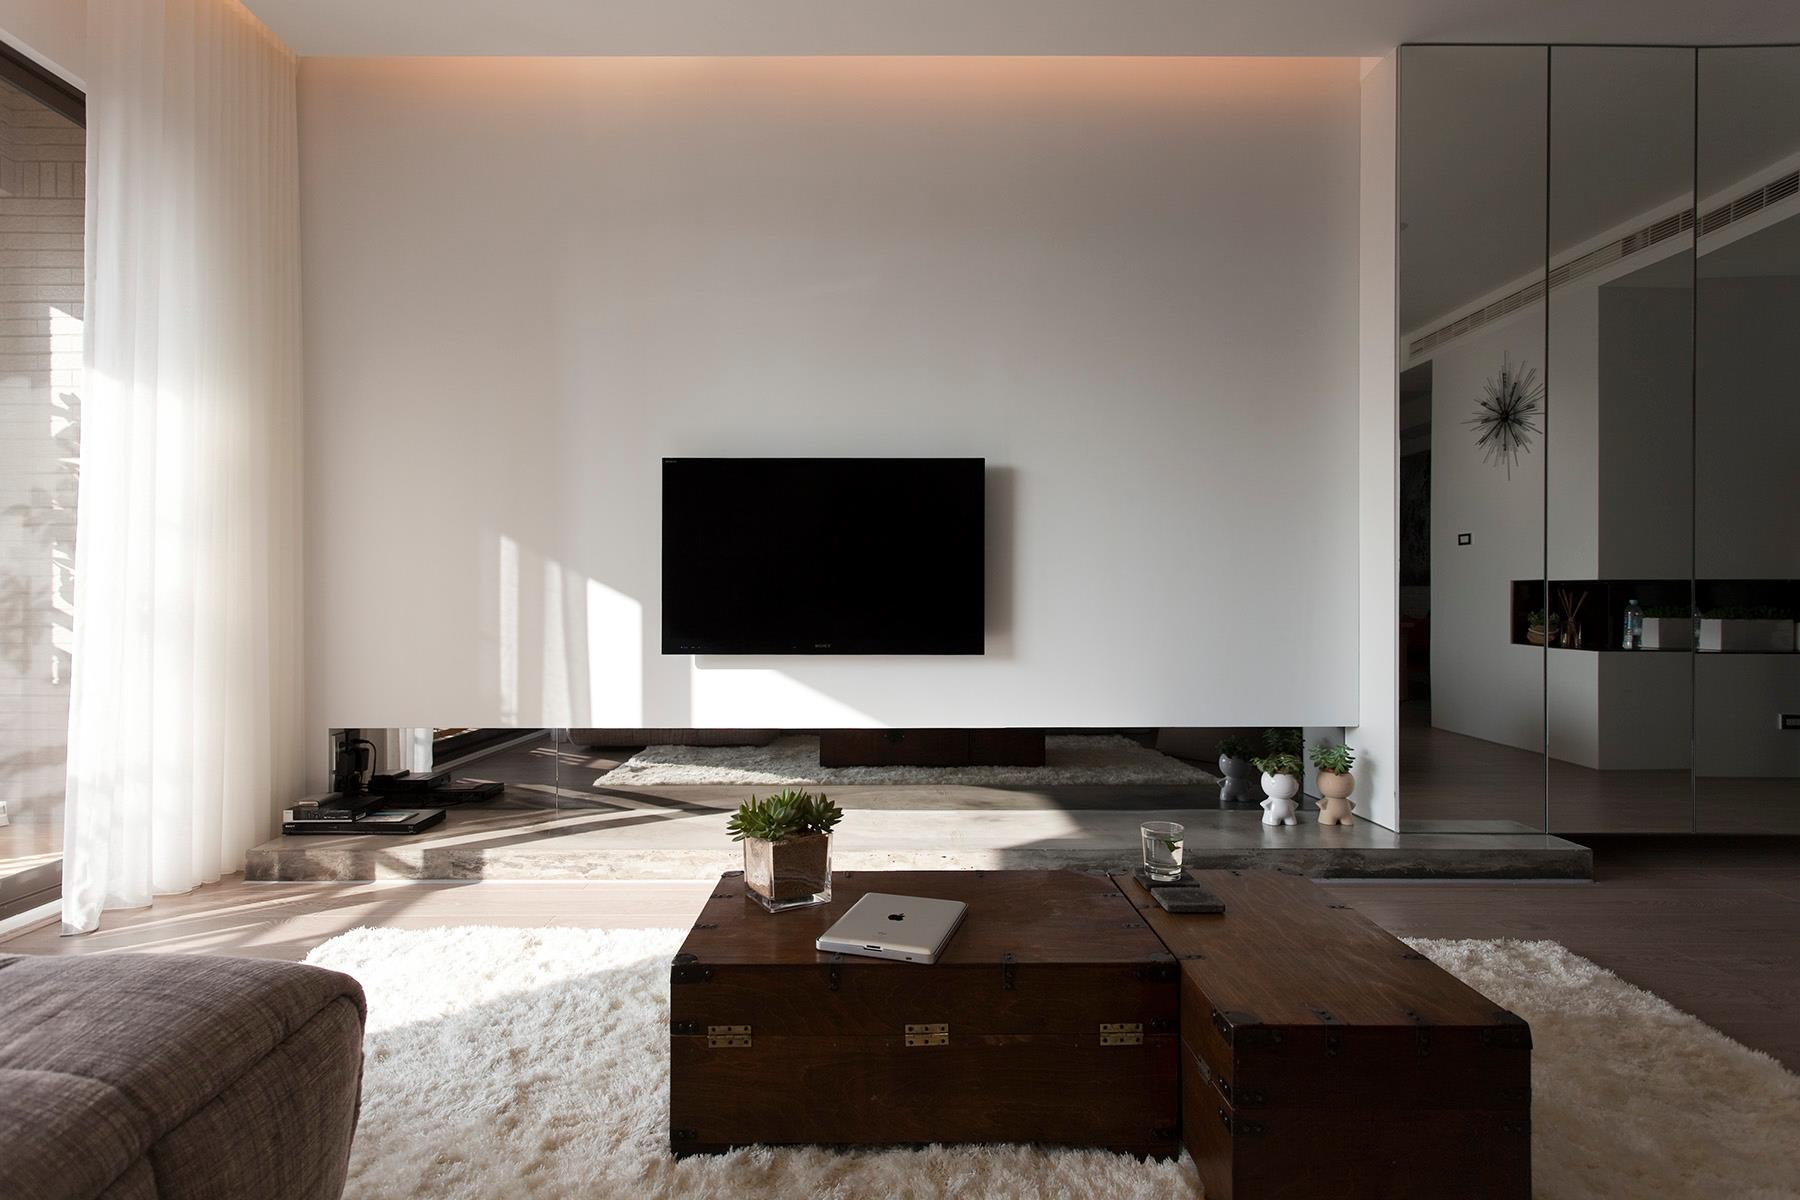 Incredible Modern Living Room Decor 1800 x 1200 · 160 kB · jpeg